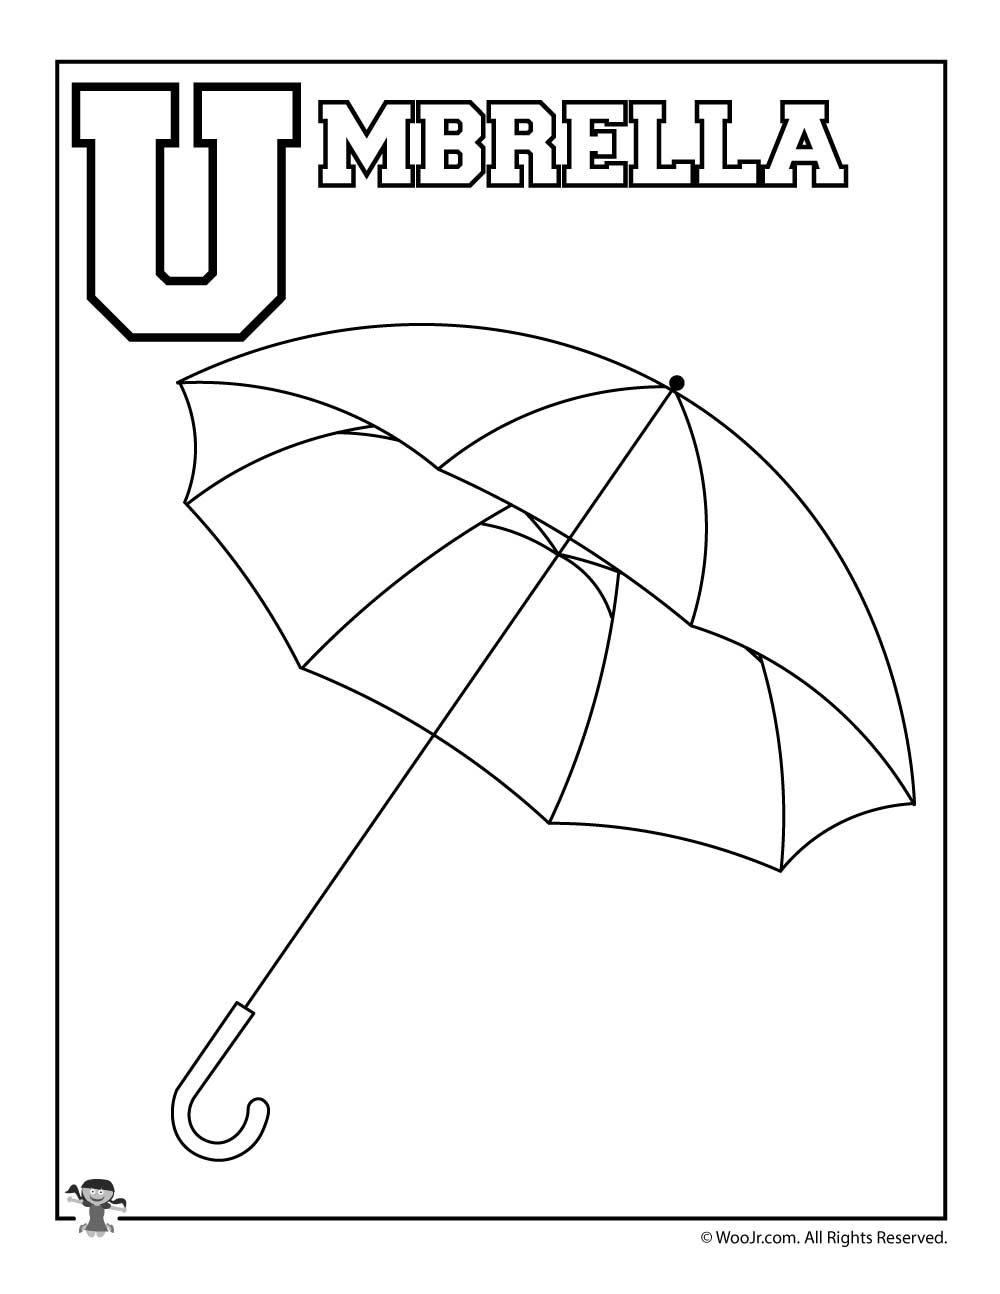 U is for Umbrella Coloring Page | Woo! Jr. Kids Activities